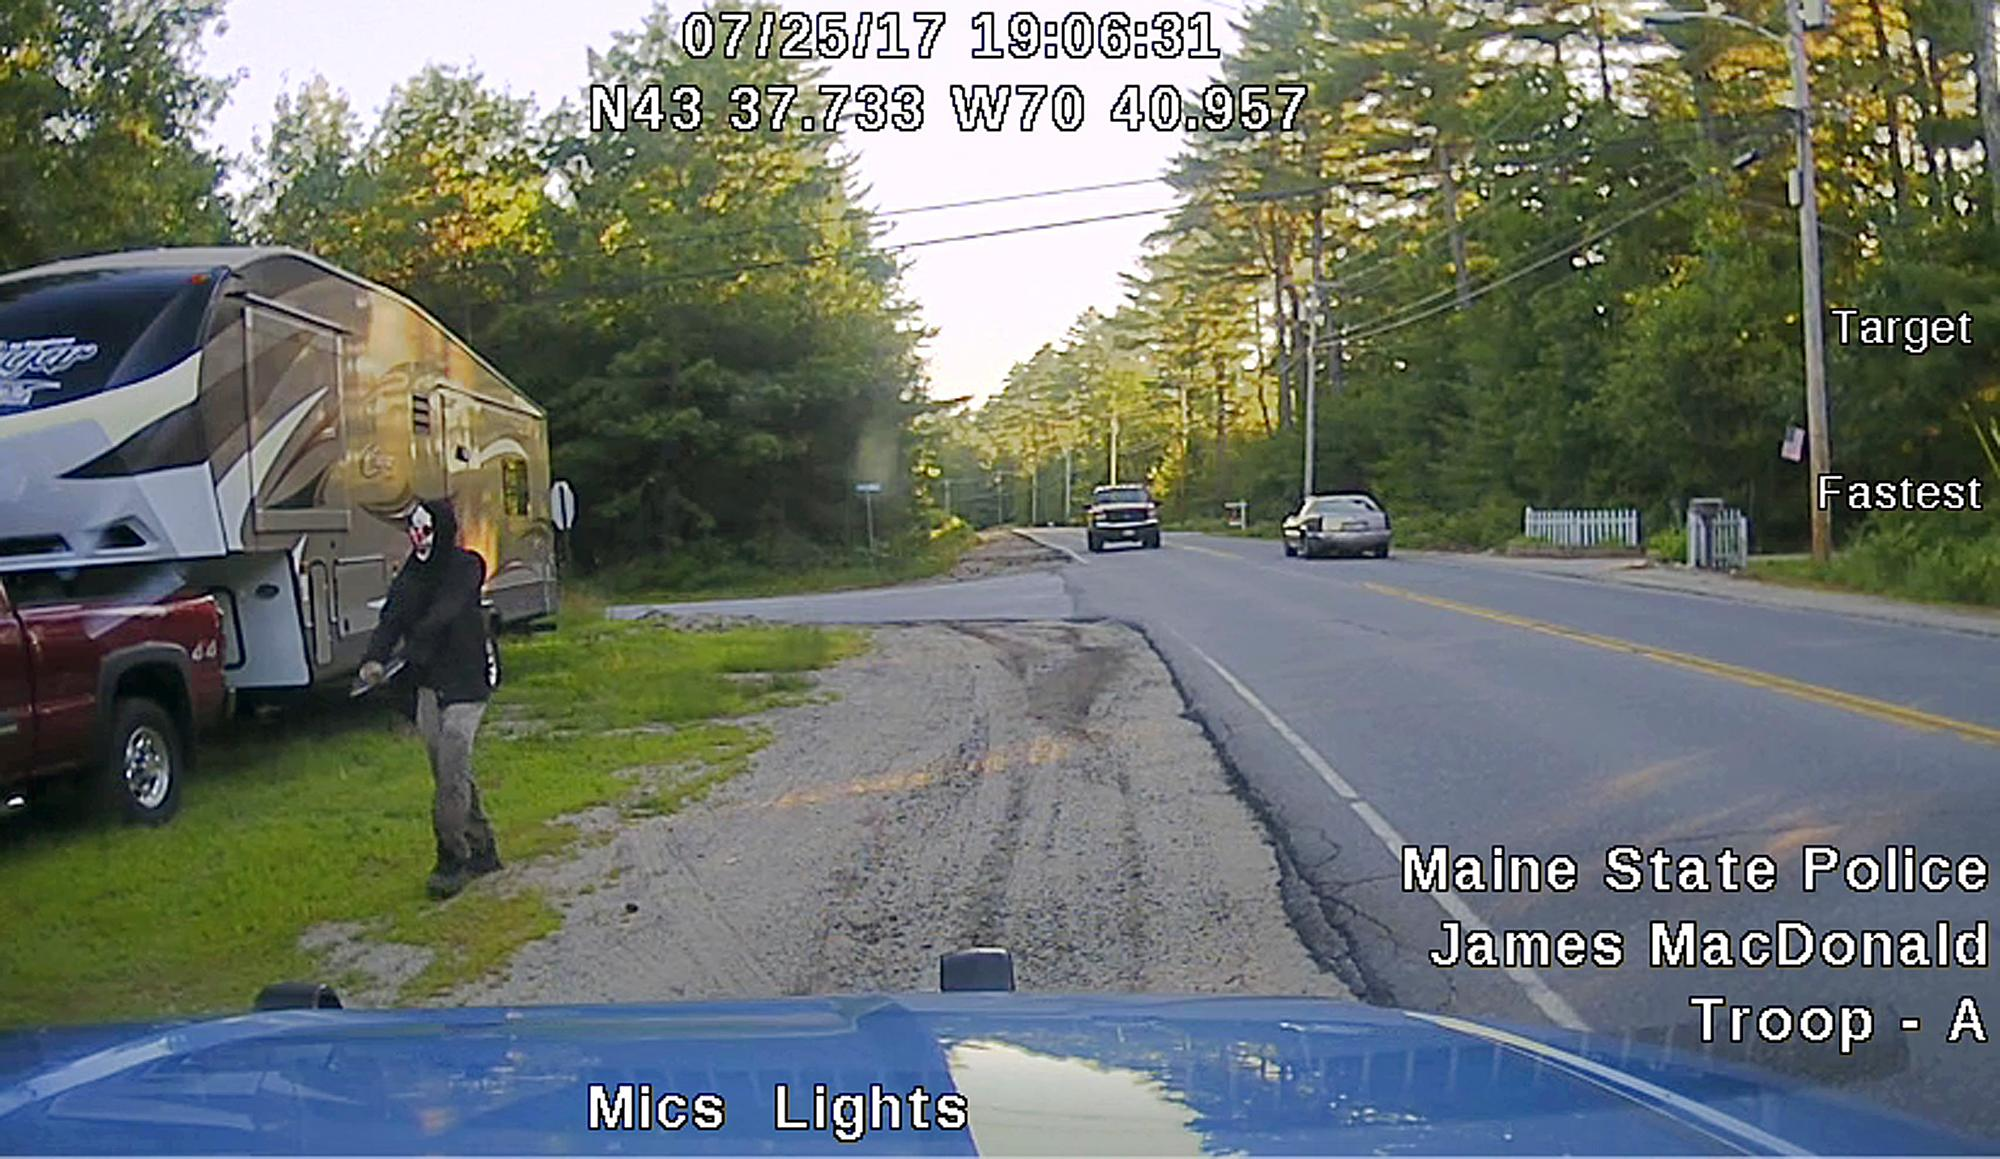 This Tuesday, July 25, 2017 patrol car dashboard camera image released by the Maine State Police shows a man strolling down a street in Hollis, Maine, who police said was wearing a clown mask with a machete taped to his amputated arm. Police said the man, Corey Berry, 31, of Hollis, was arrested and charged with criminal threatening. He was released after posting bail. (Maine State Police via AP)